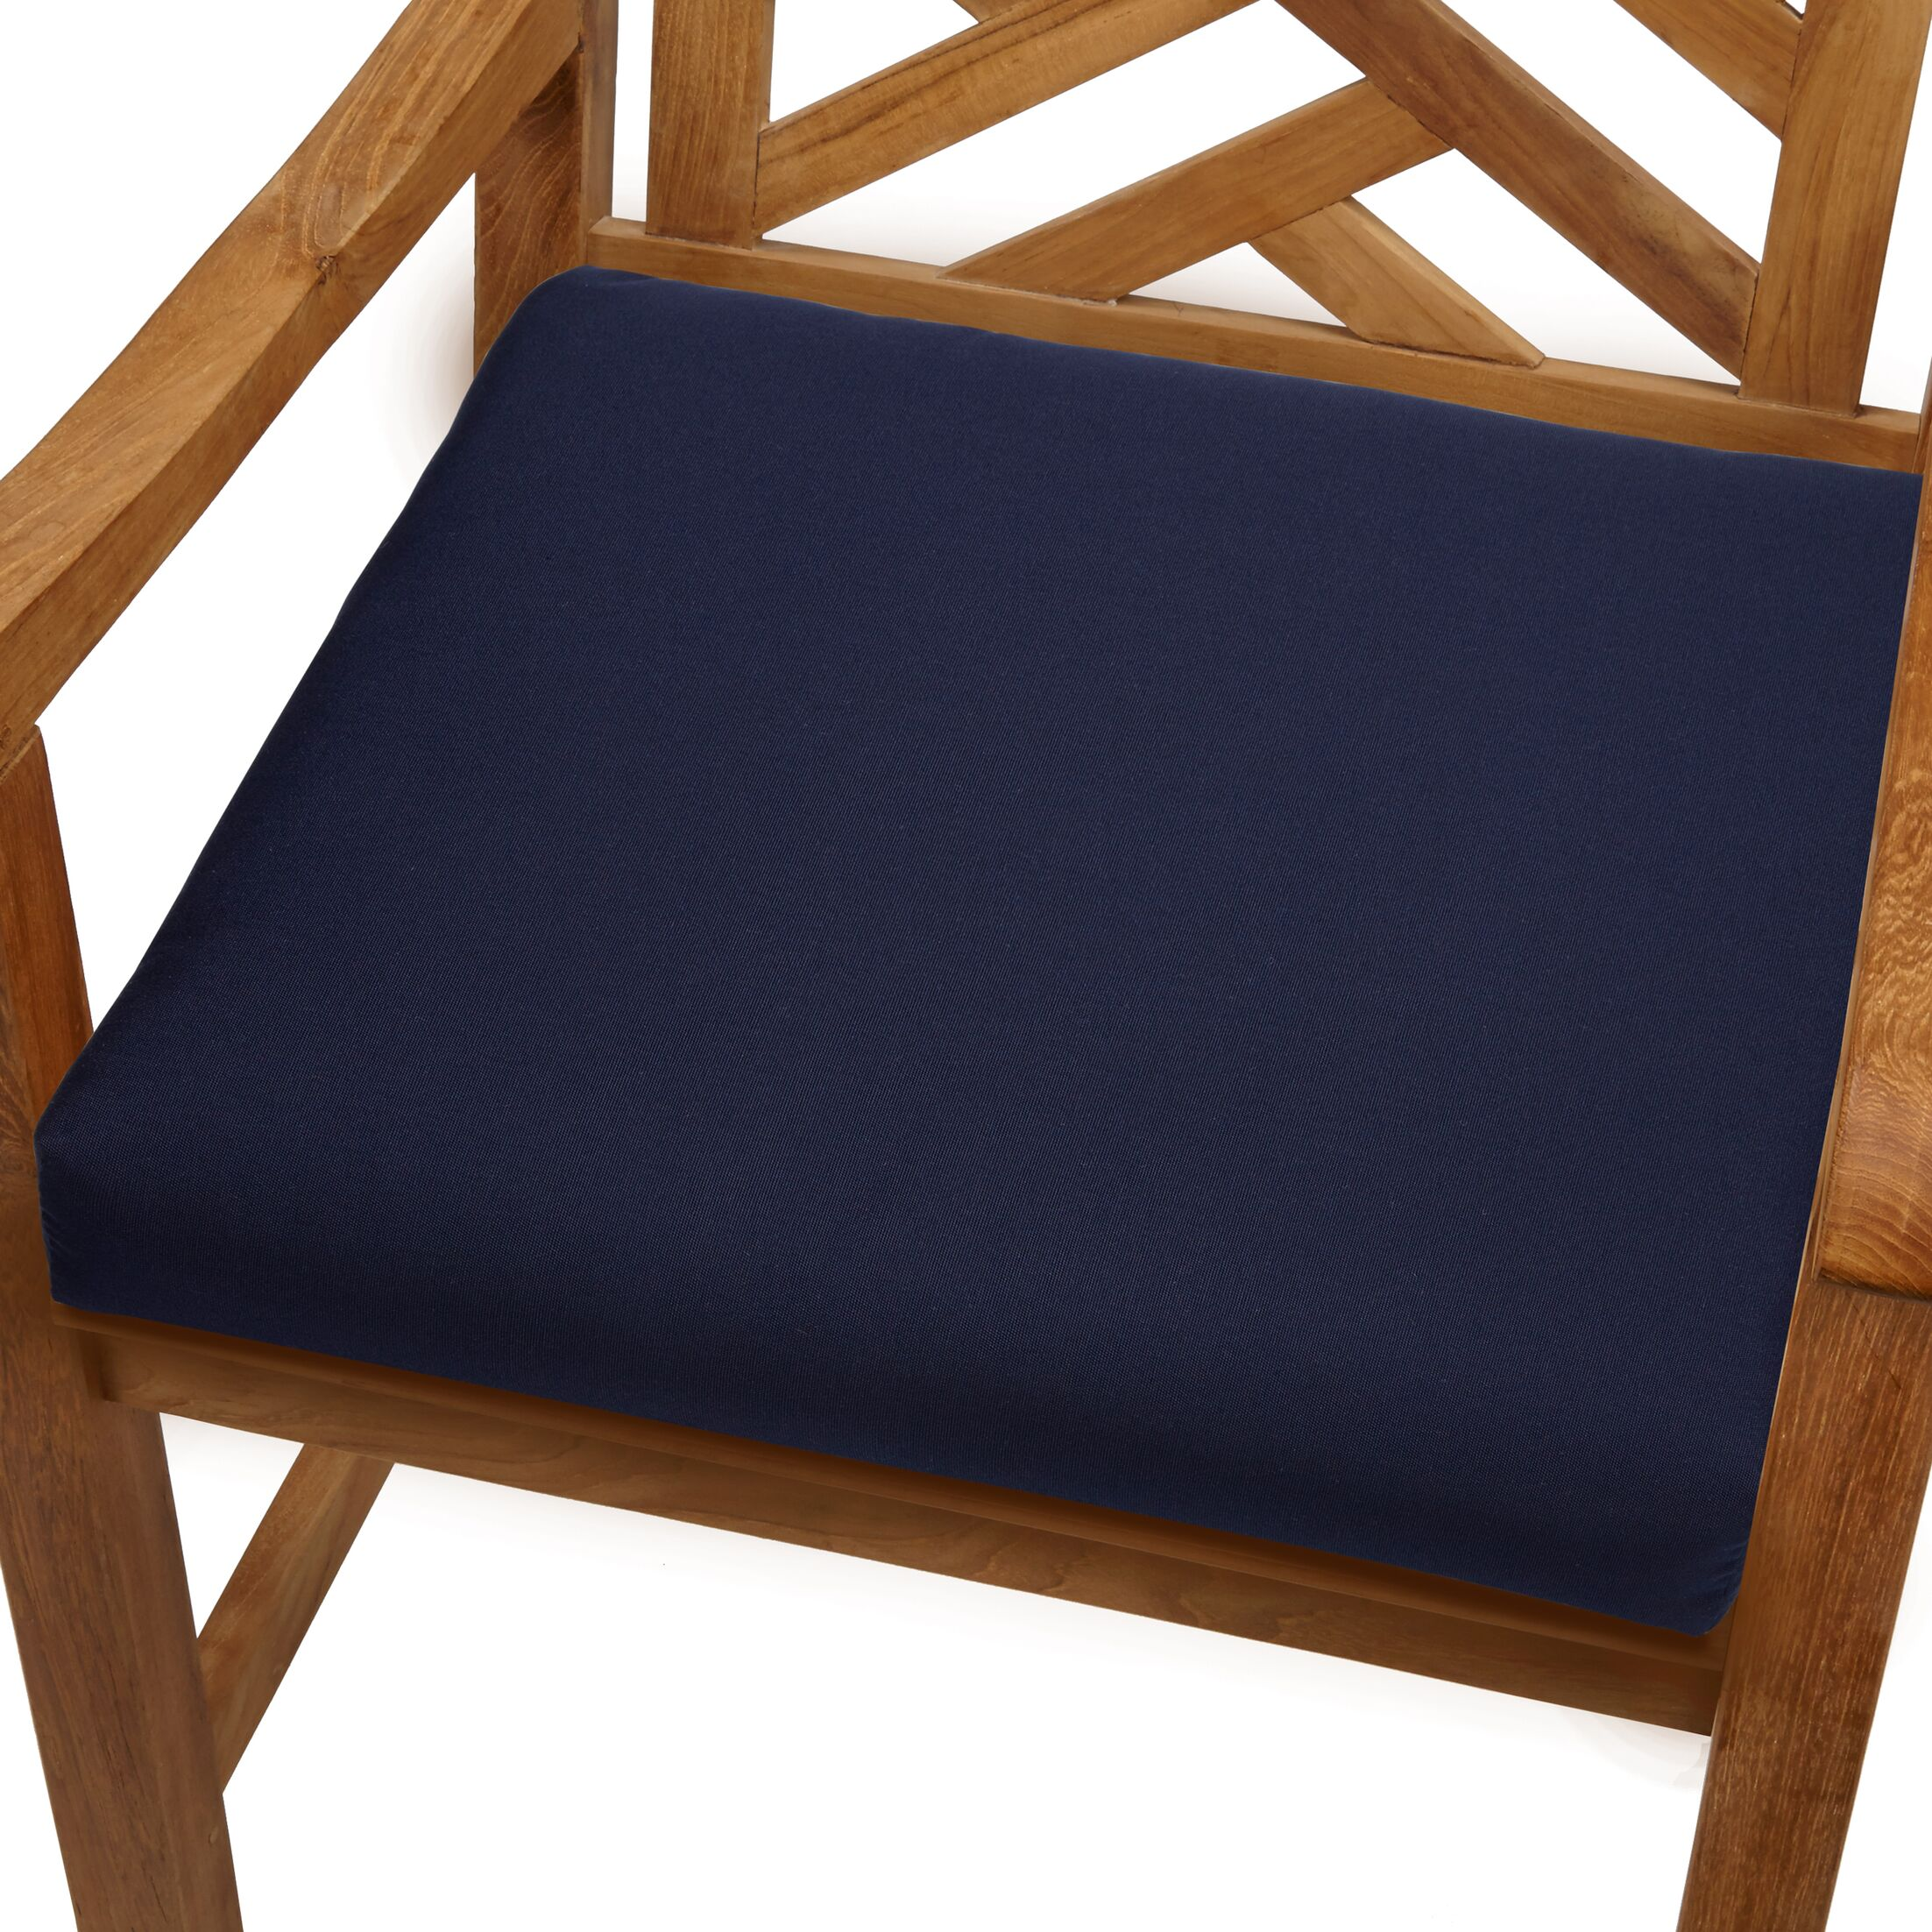 Mcclain Indoor/Outdoor Sunbrella Dining Chair Cushion Fabric: Navy, Size: 20